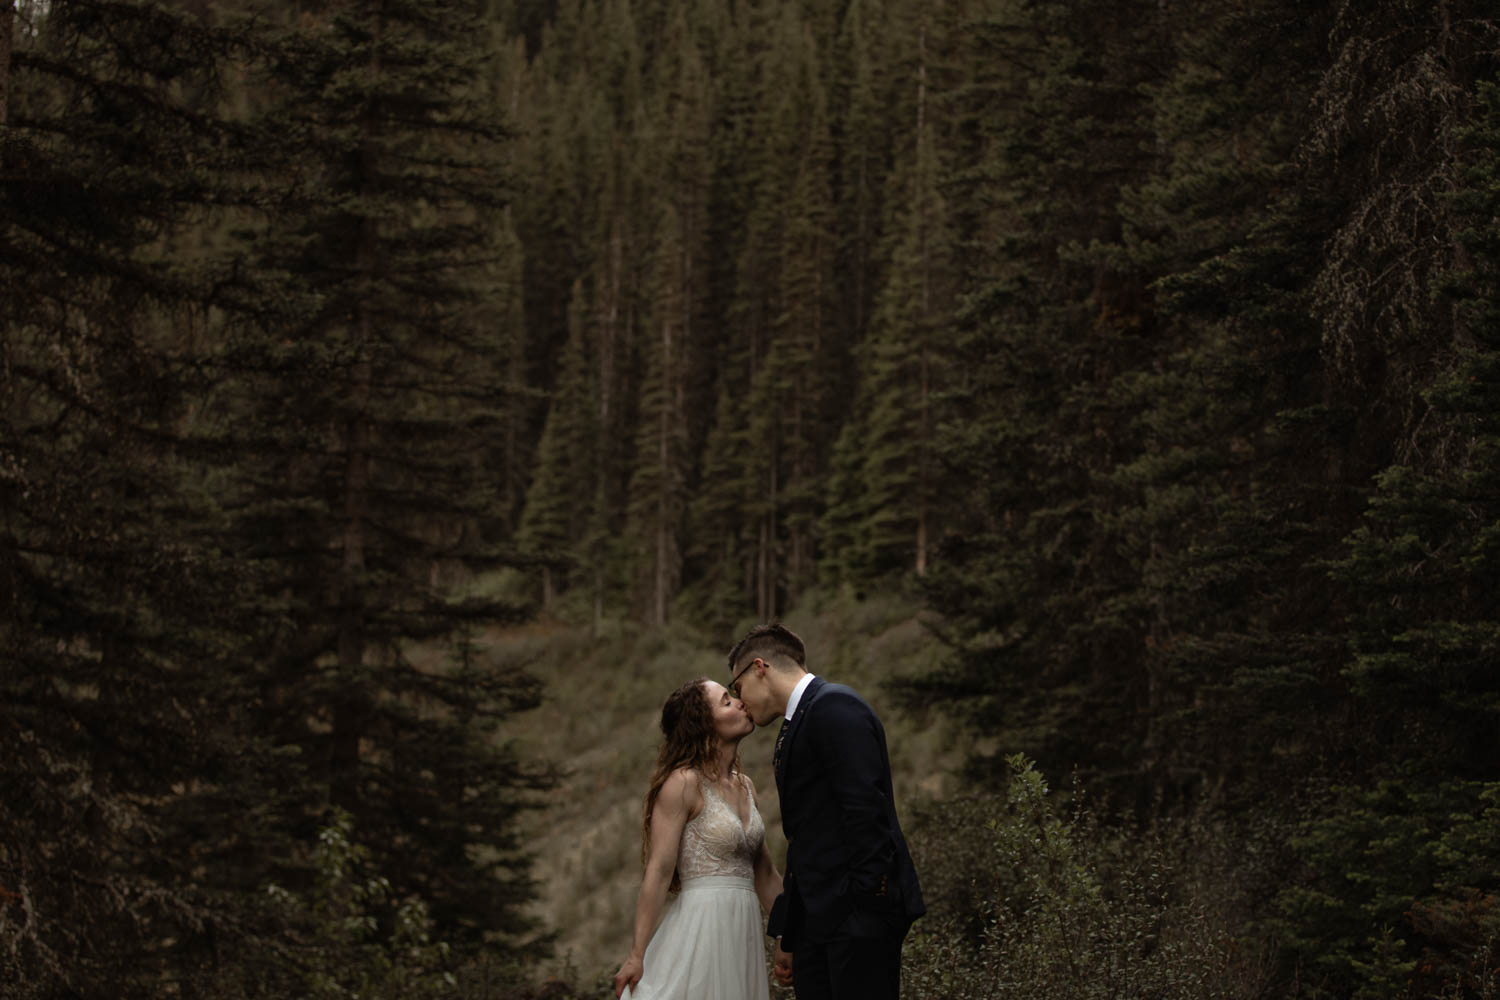 Kananaskis forest elopement